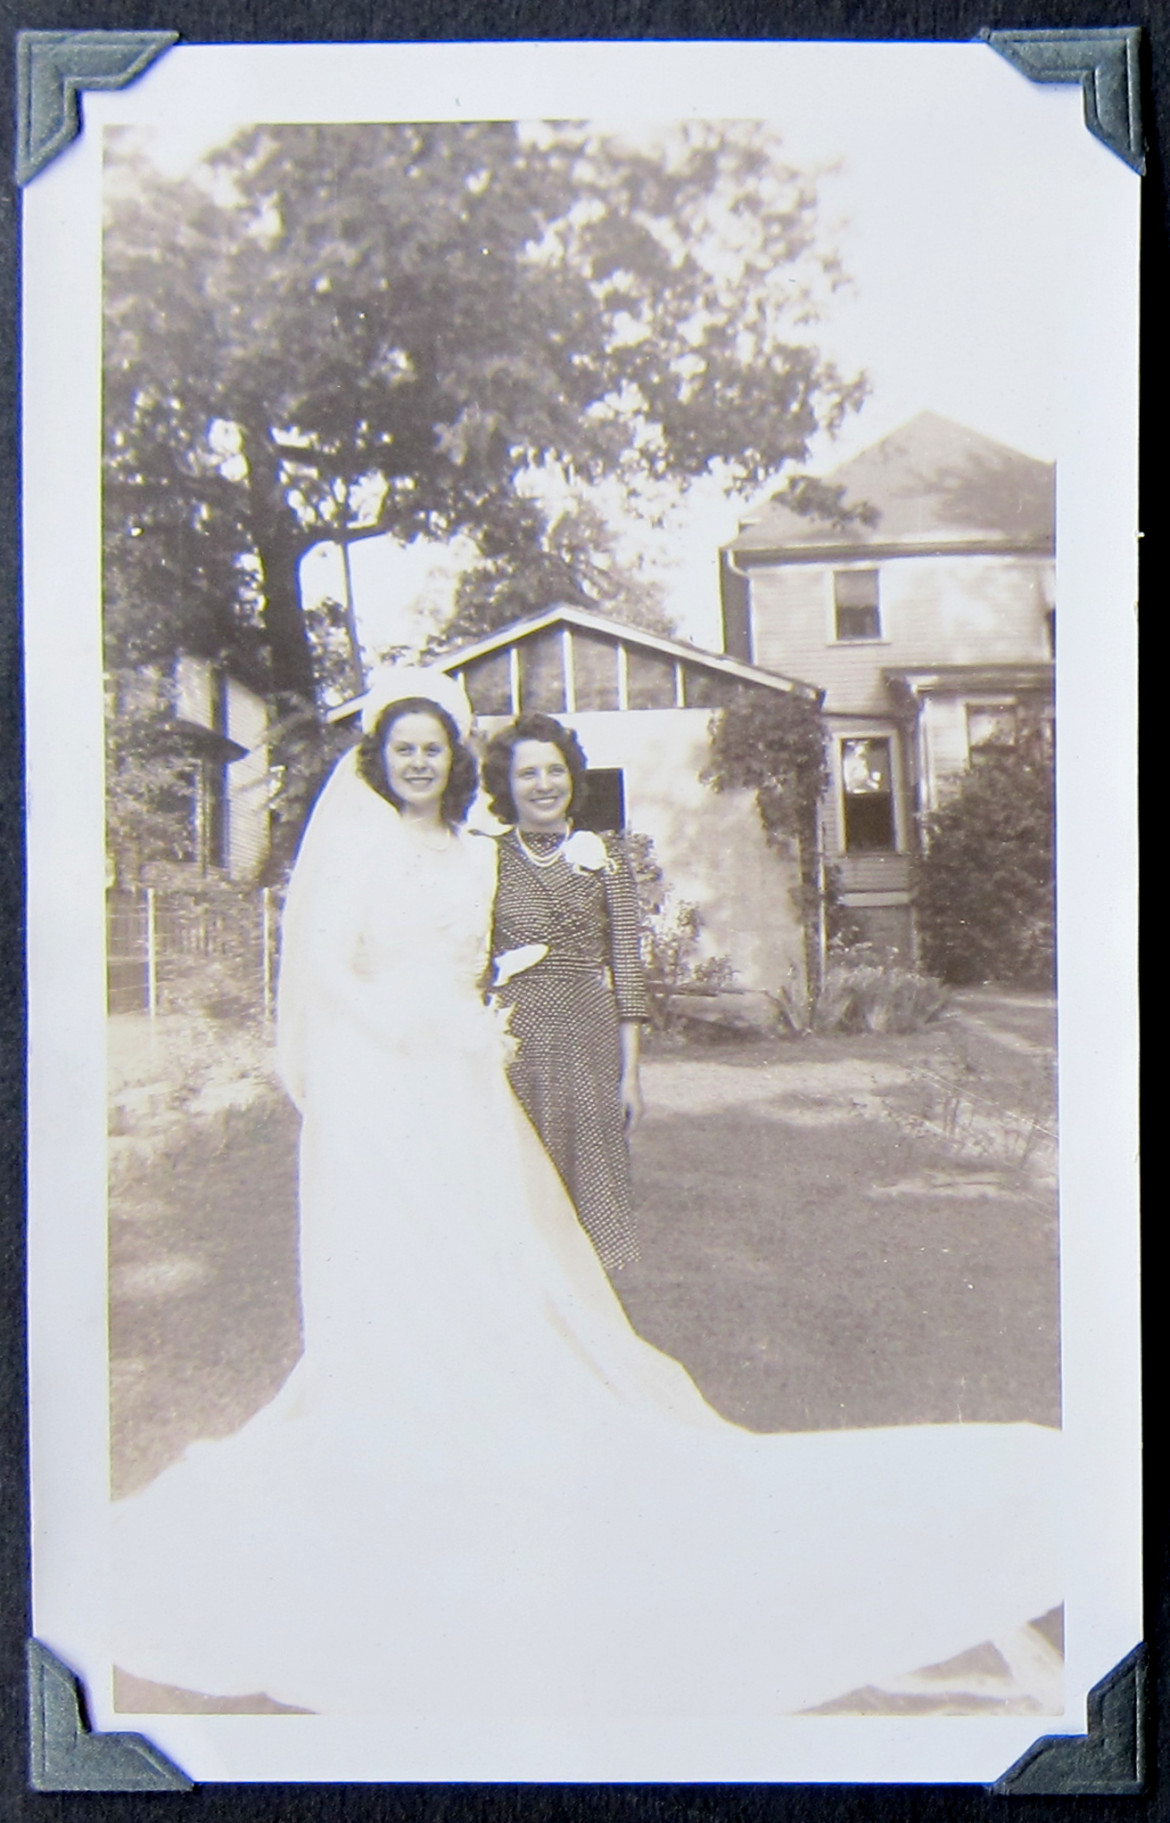 well, one thing leads to another.  Marjorie and a friend in the back yard of her home at 2855 Laclede Station Road.